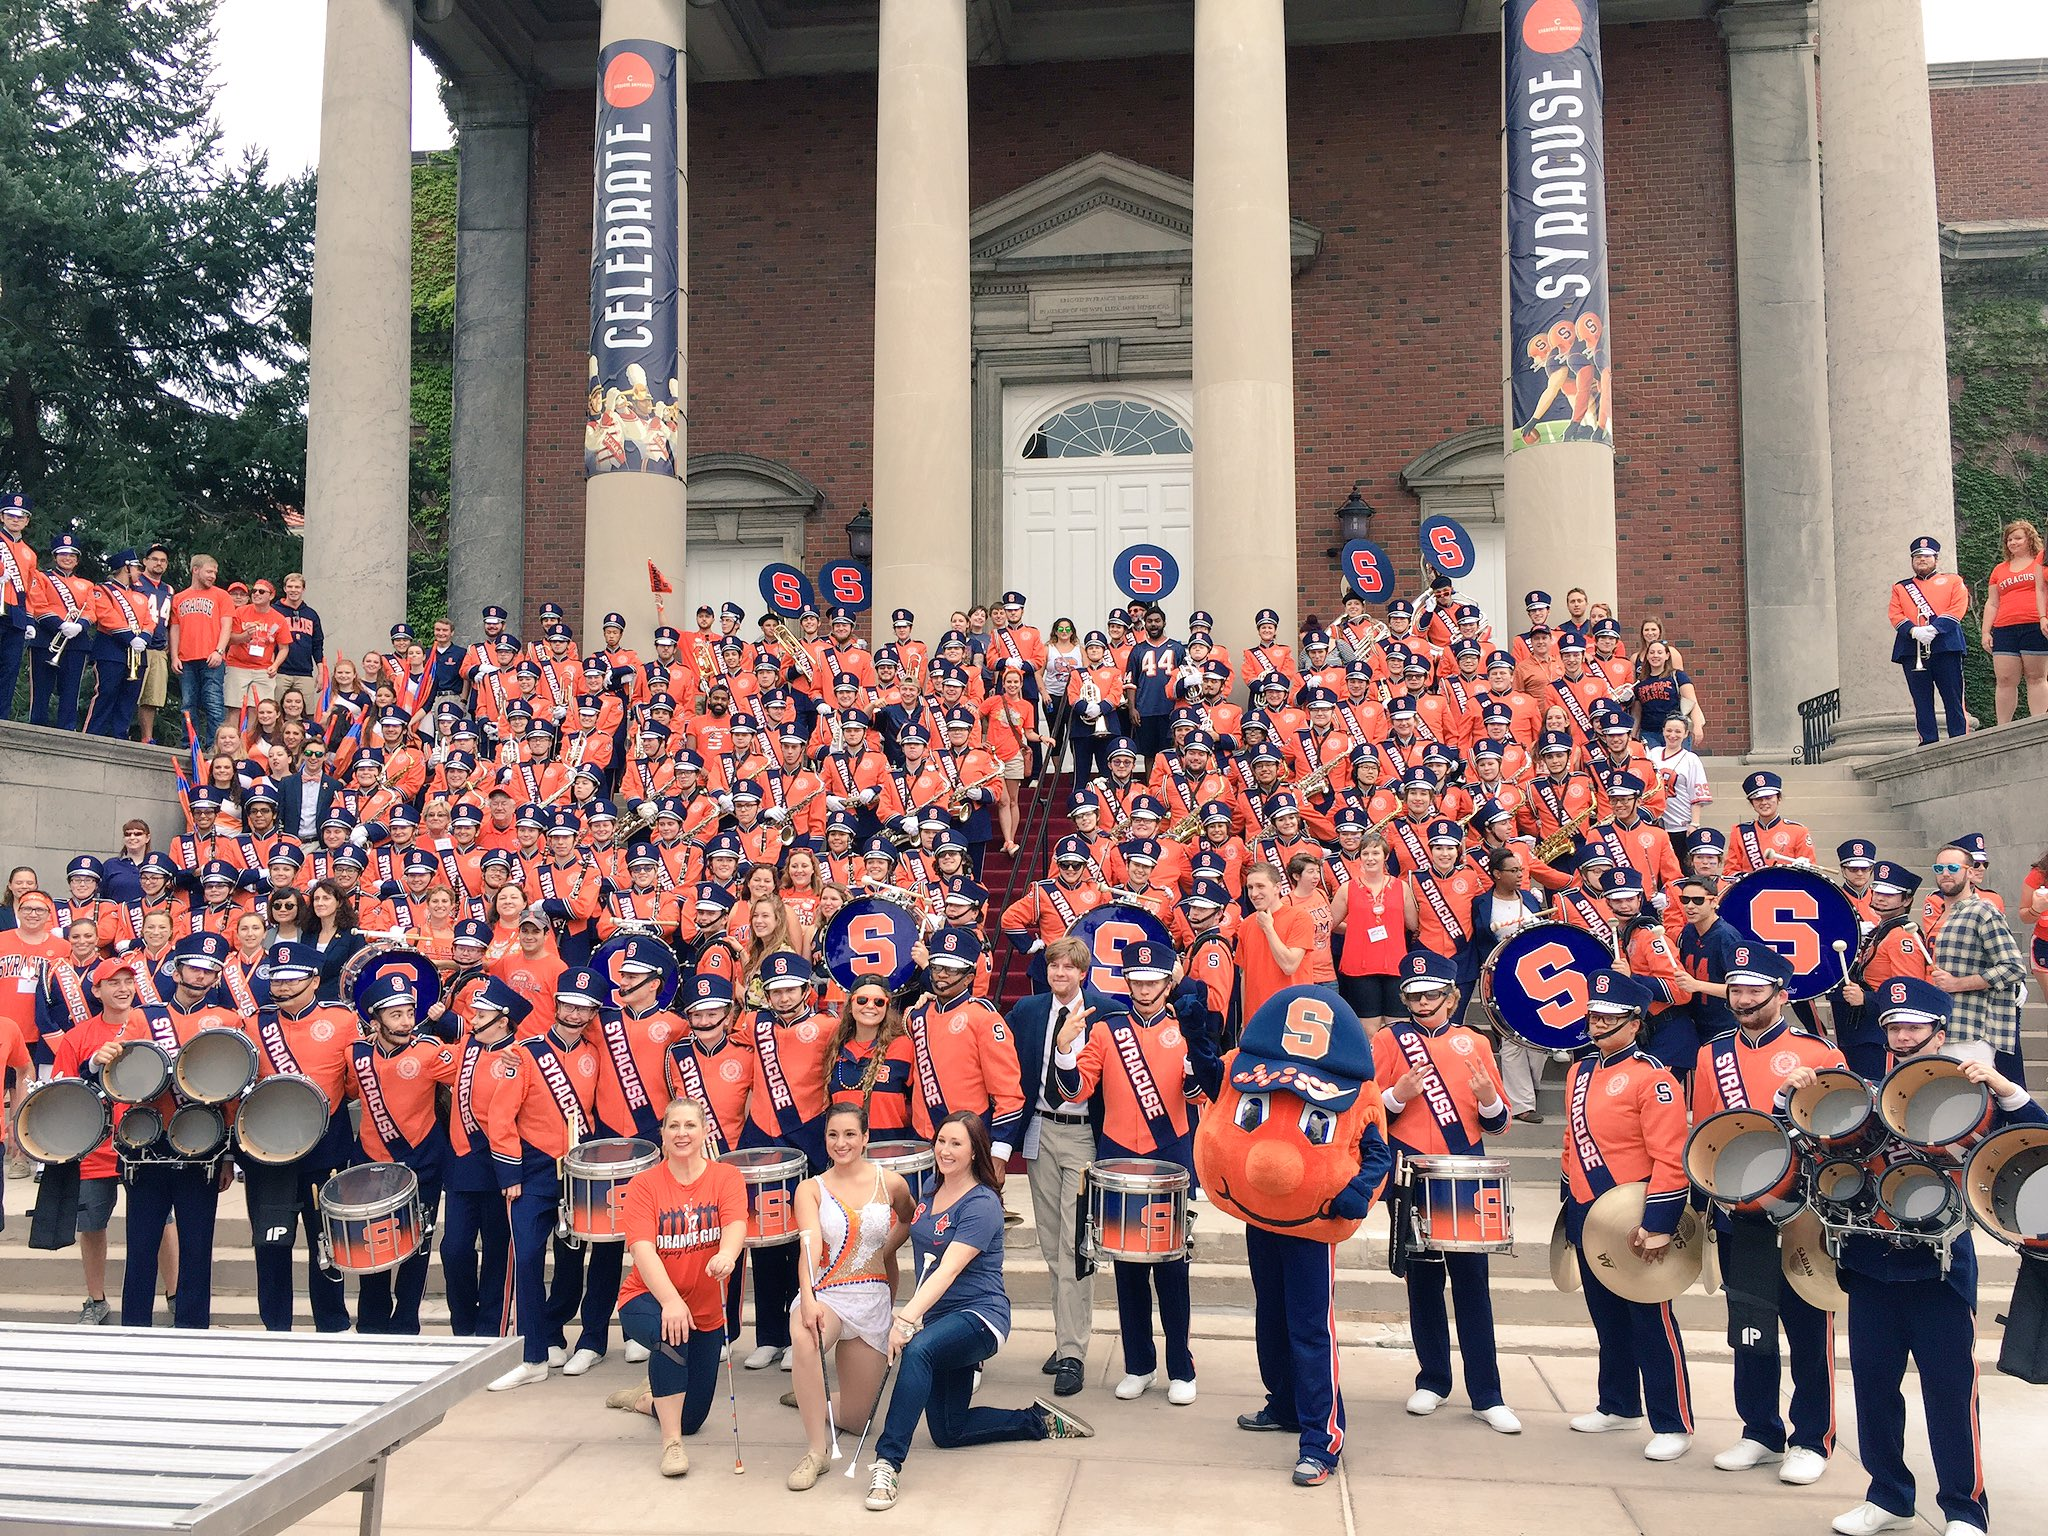 One of our favorite photos at #OrangeCentral every year! Current marching band with alumni band members! https://t.co/Df1Gucj8uI